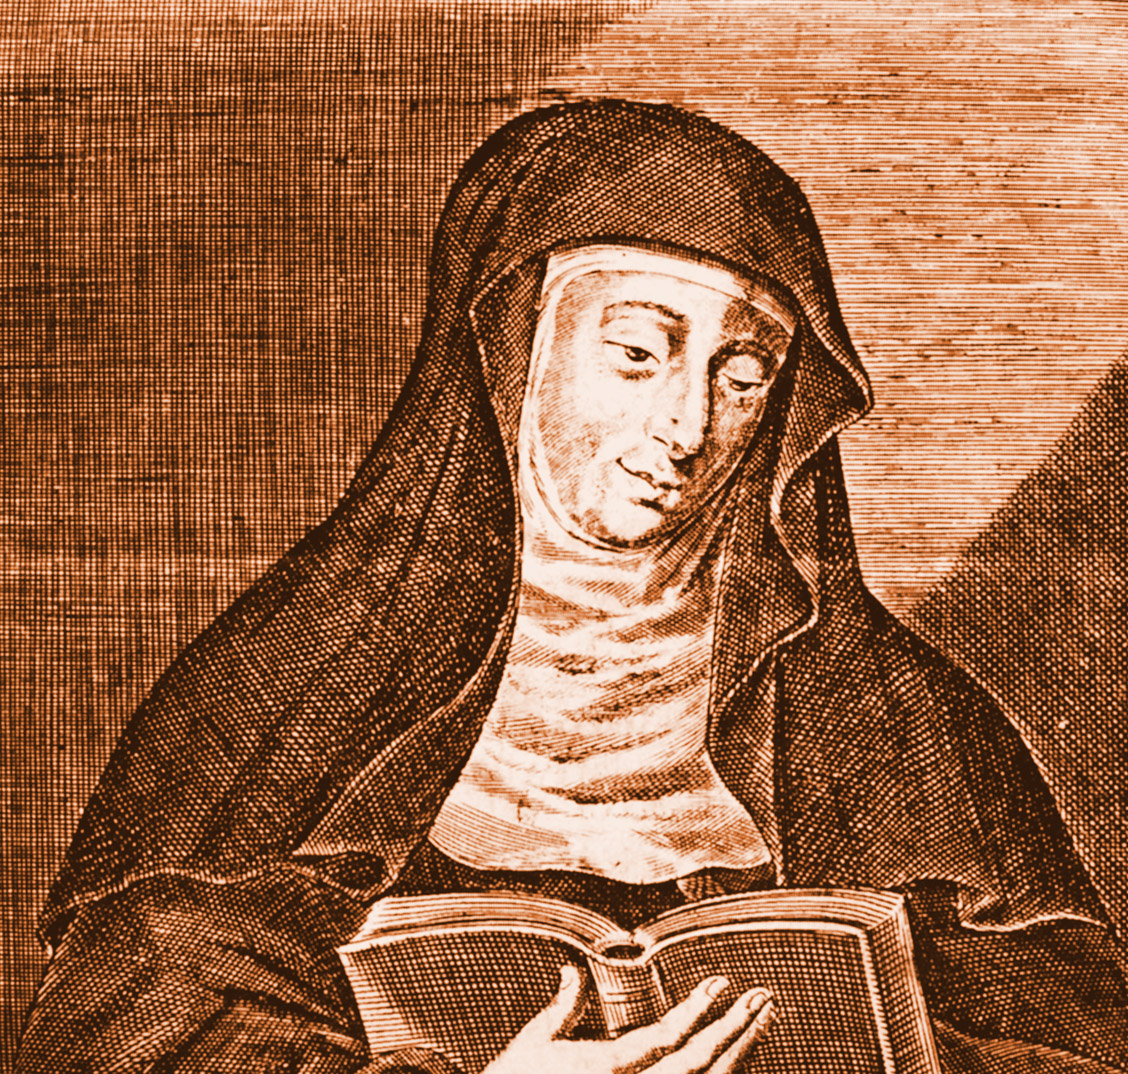 a biography of saint hildegard a german saint ~sthildegard of bingen was a german scientist, philosopher, theologian, and composer ~sthildegard was born in germanyshe was the tenth child of a well to do, or otherwise a fairly wealthy family.